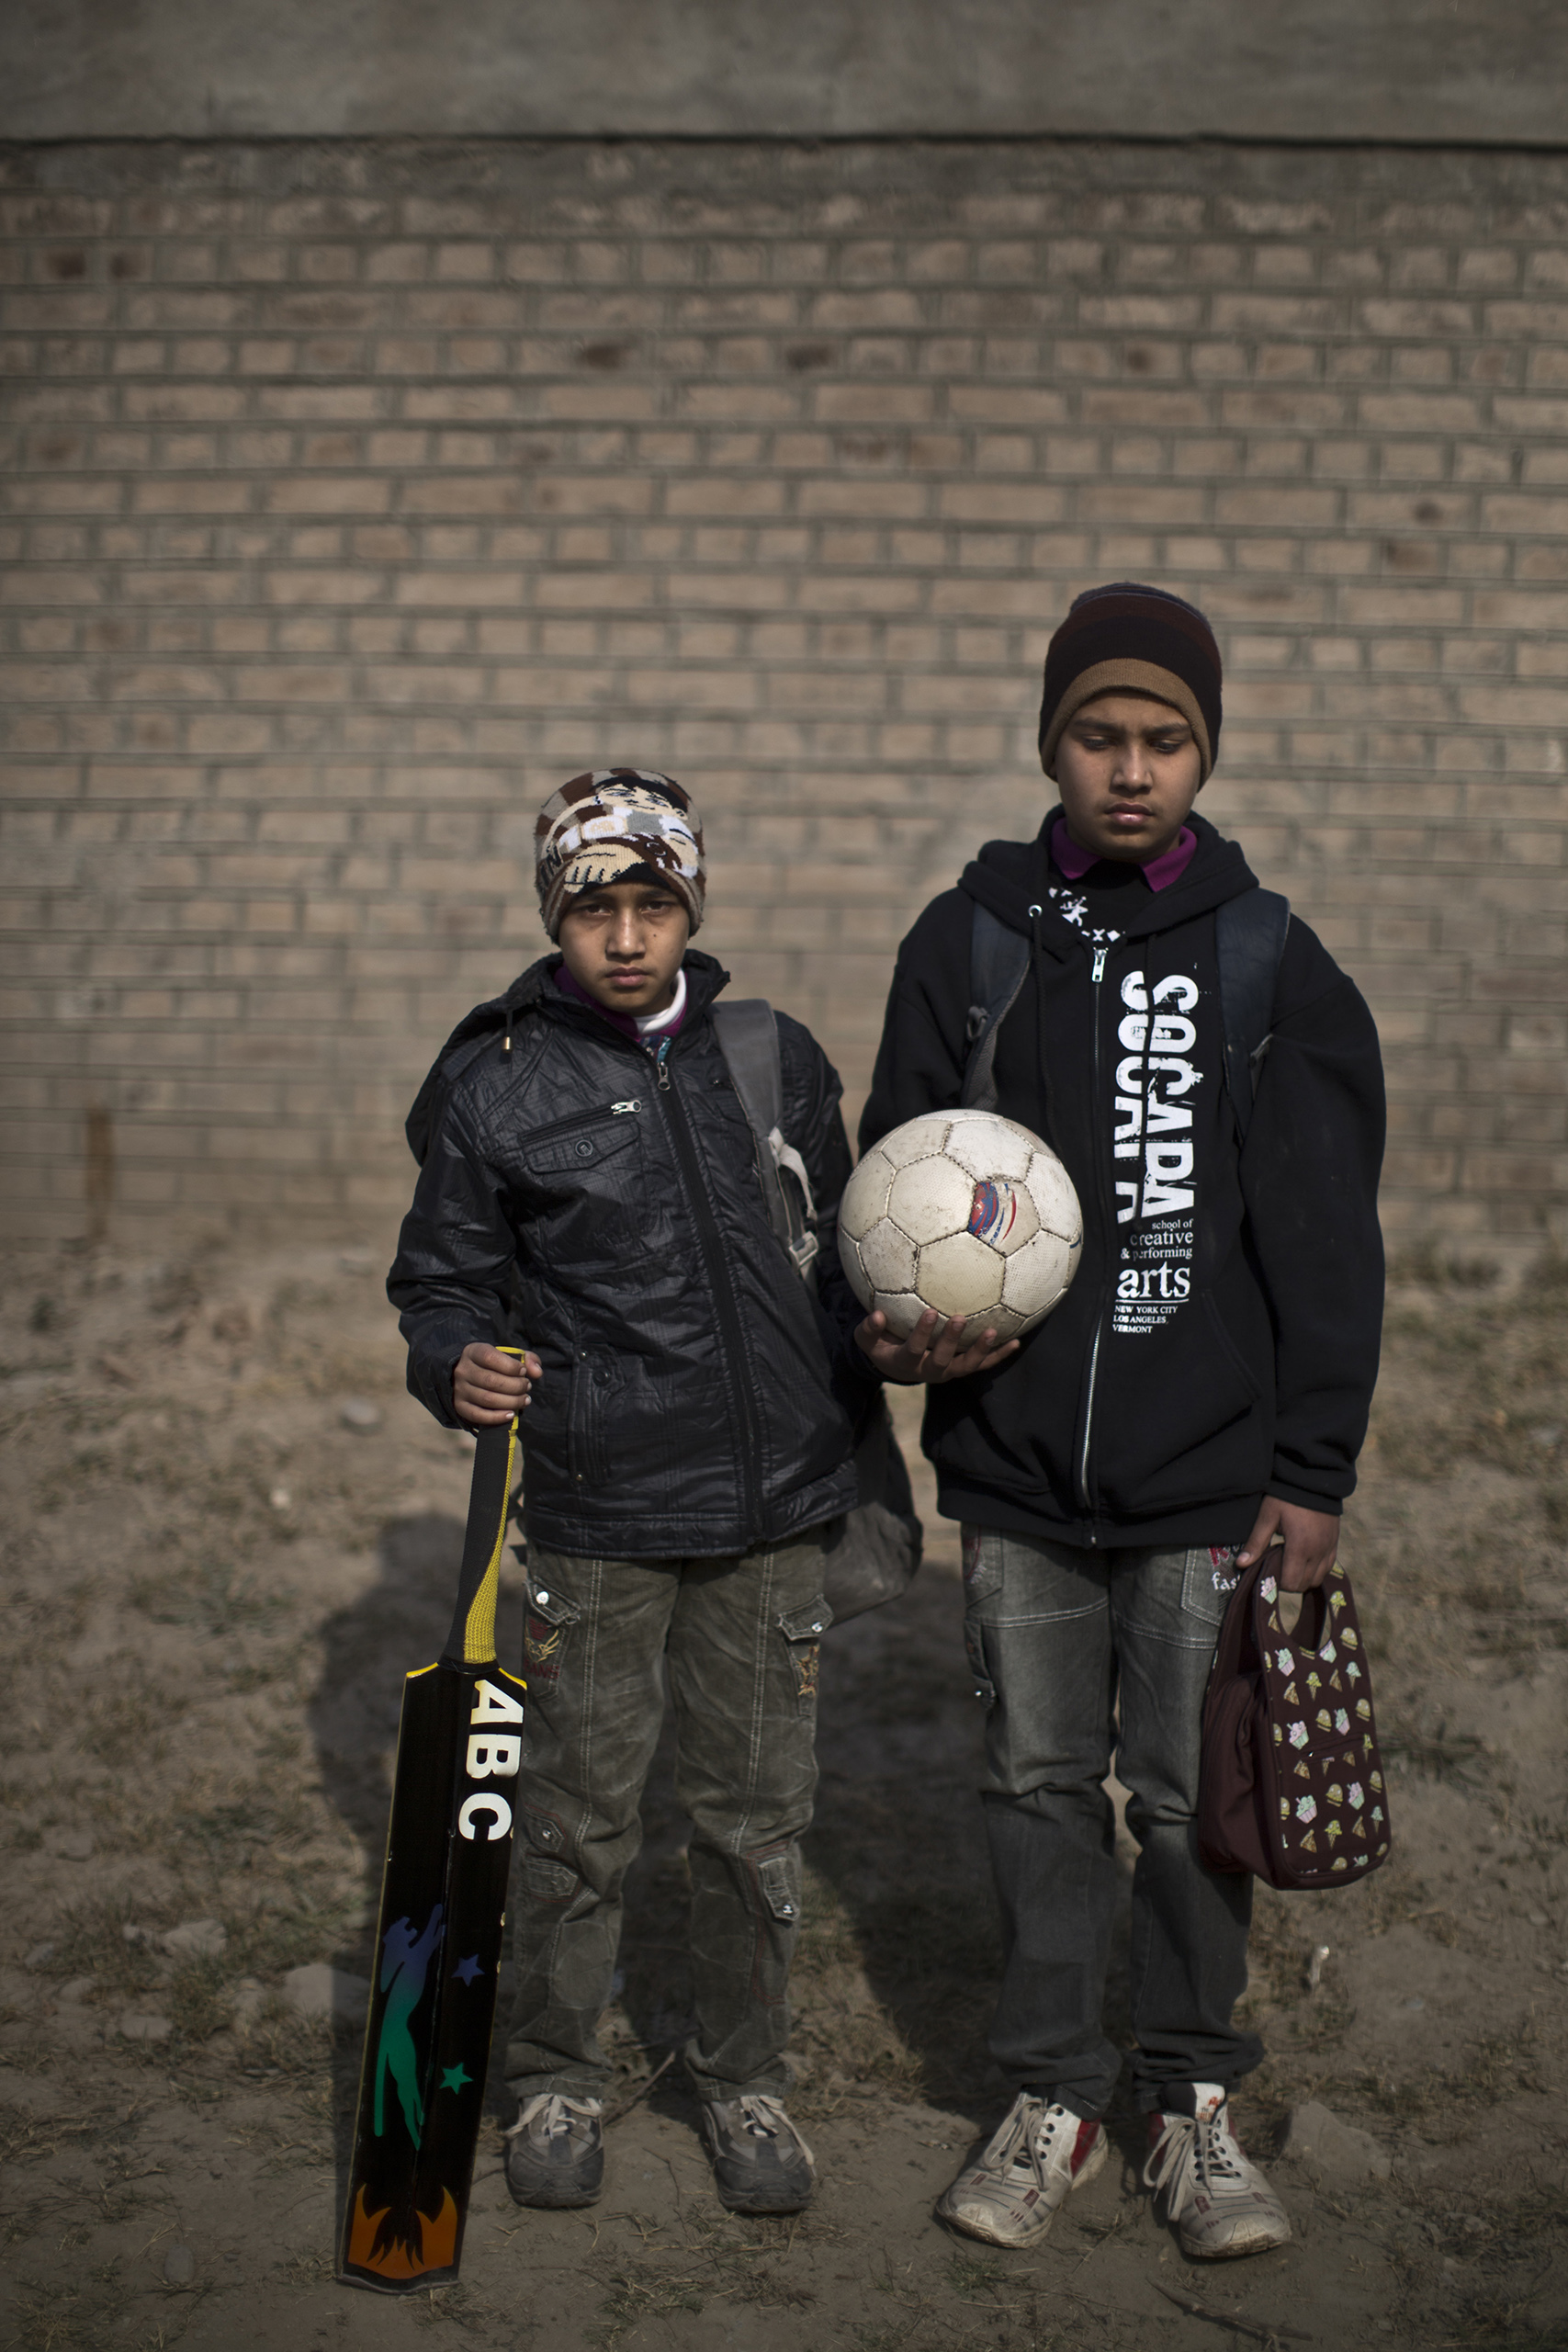 "Muddathir Naveed, 14, (right) and Muzammil, 12, students and brothers who survived the Pakistani Taliban's attack on the Army Public School on Dec. 16, in the school's yard. Peshawar, Pakistan. Dec. 20, 2014.                                                                      ""It's so dangerous to study in Peshawar and so important to me and my family,"" Muddathir said. ""Me and my brother will go back to study in the same school."" Muzammil echoed that sentiment.                                                                      ""I will keep coming to my school, am not afraid anymore,"" he said. ""As my father always said to me, 'Be brave my son,' and I want to be a brave man."""